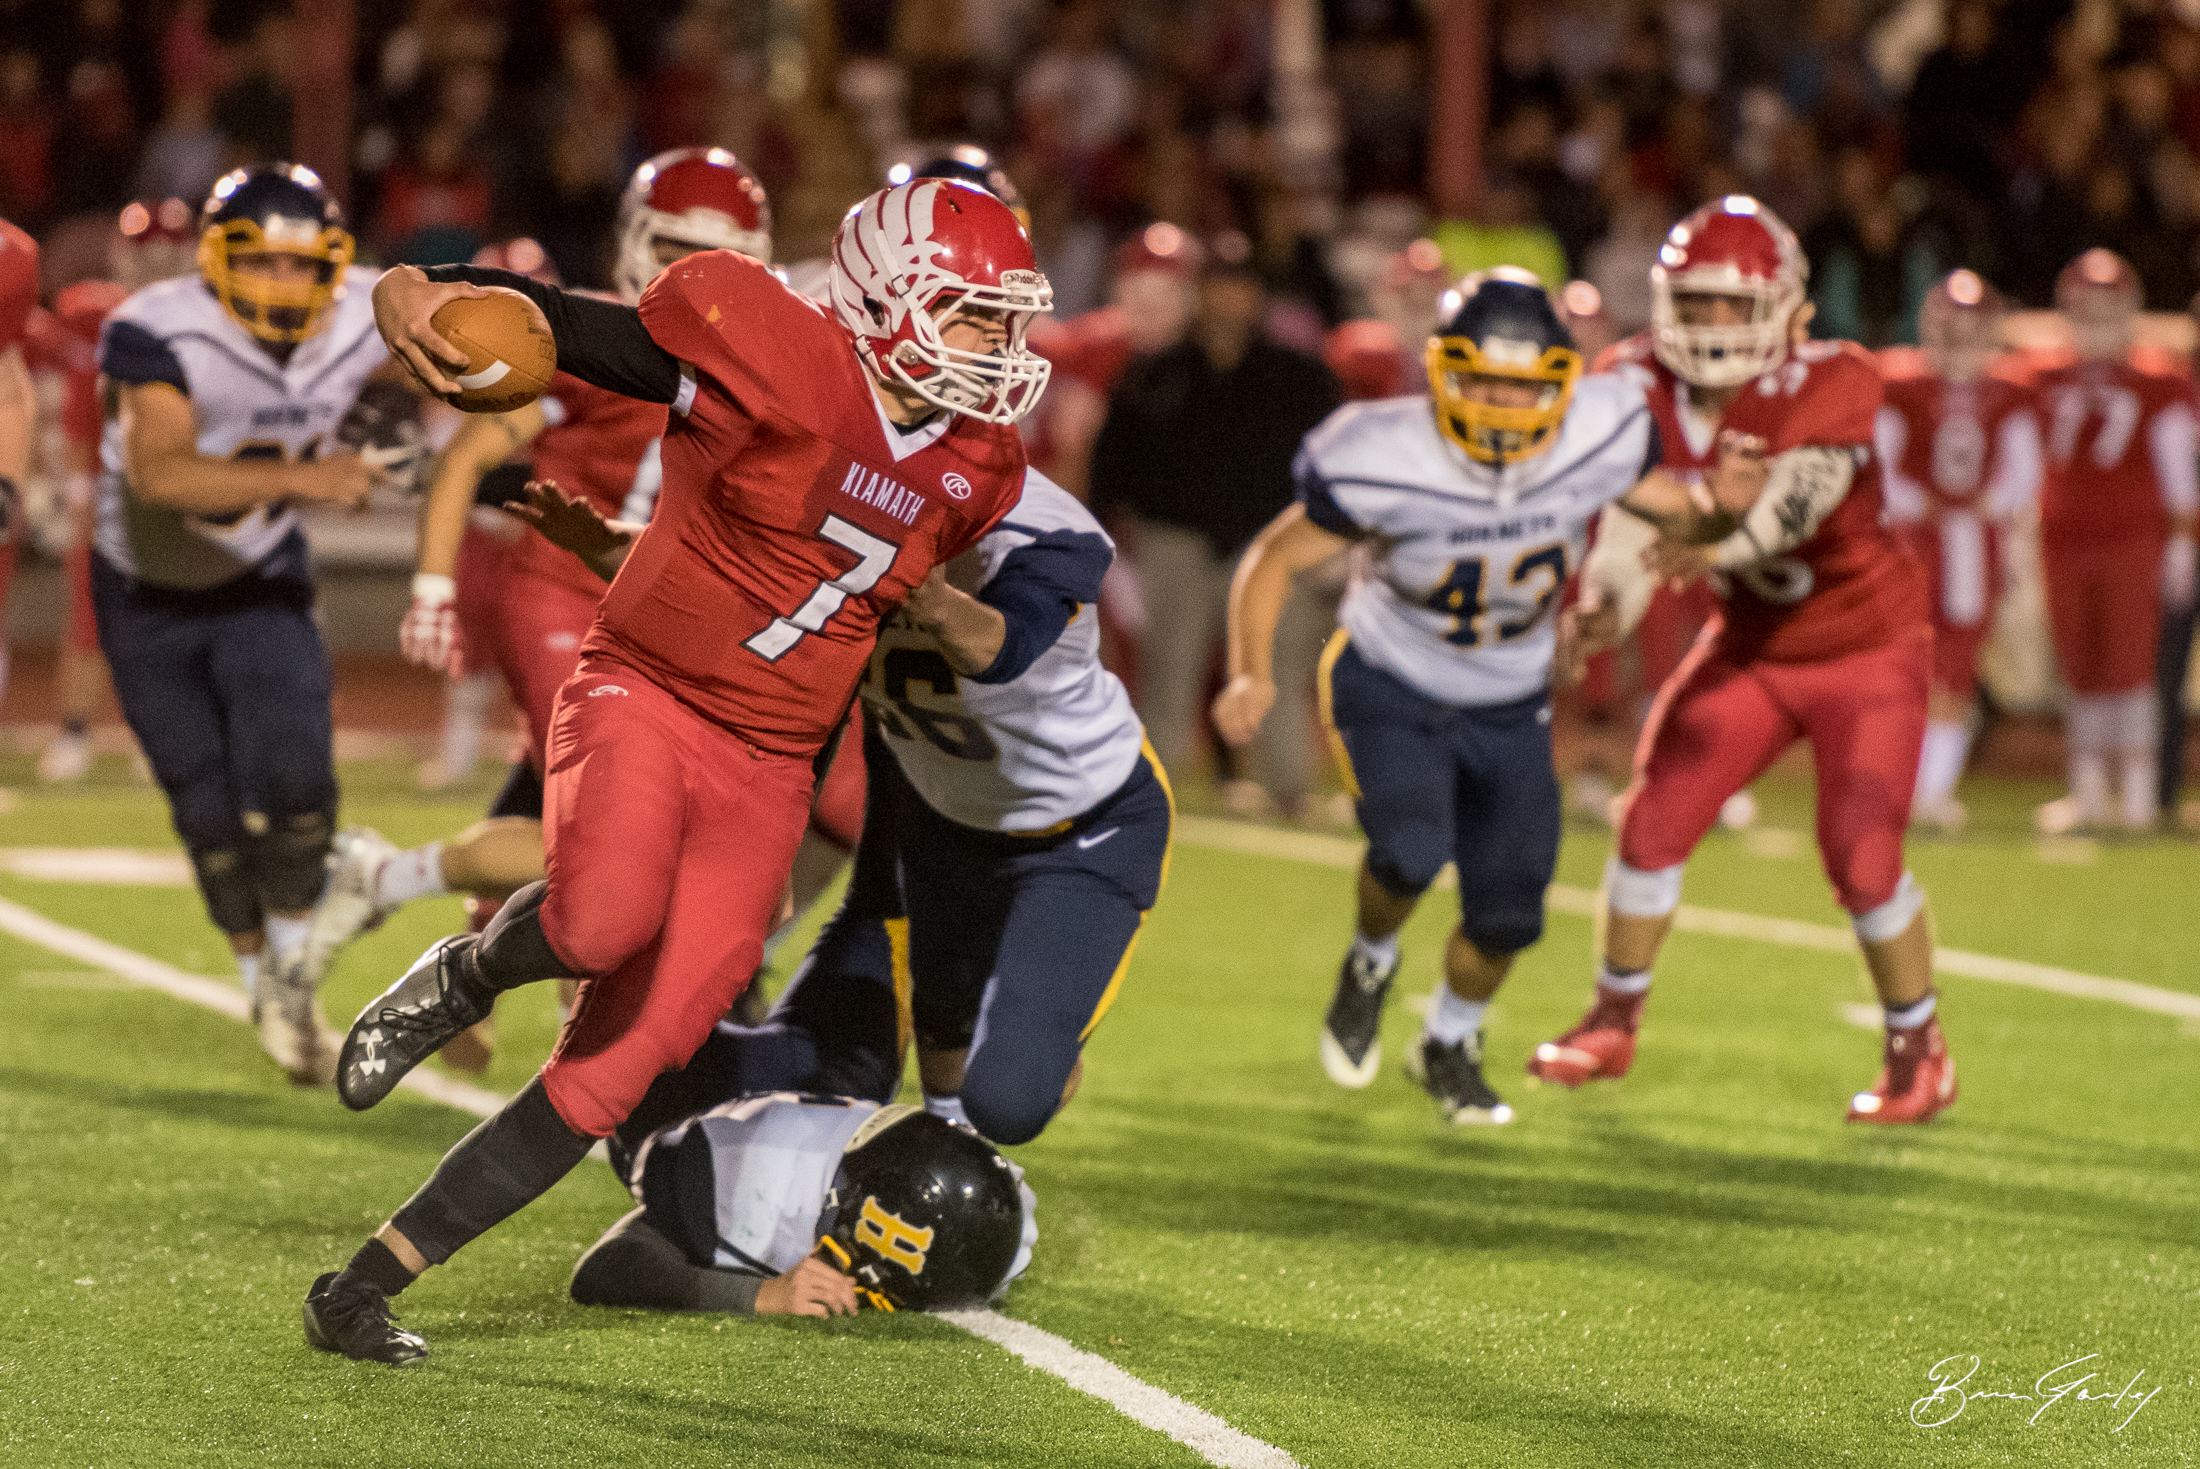 The starting QB for Klamath Union #7, Izak Peterson keeps the ball on this play and scrambles for a first down.